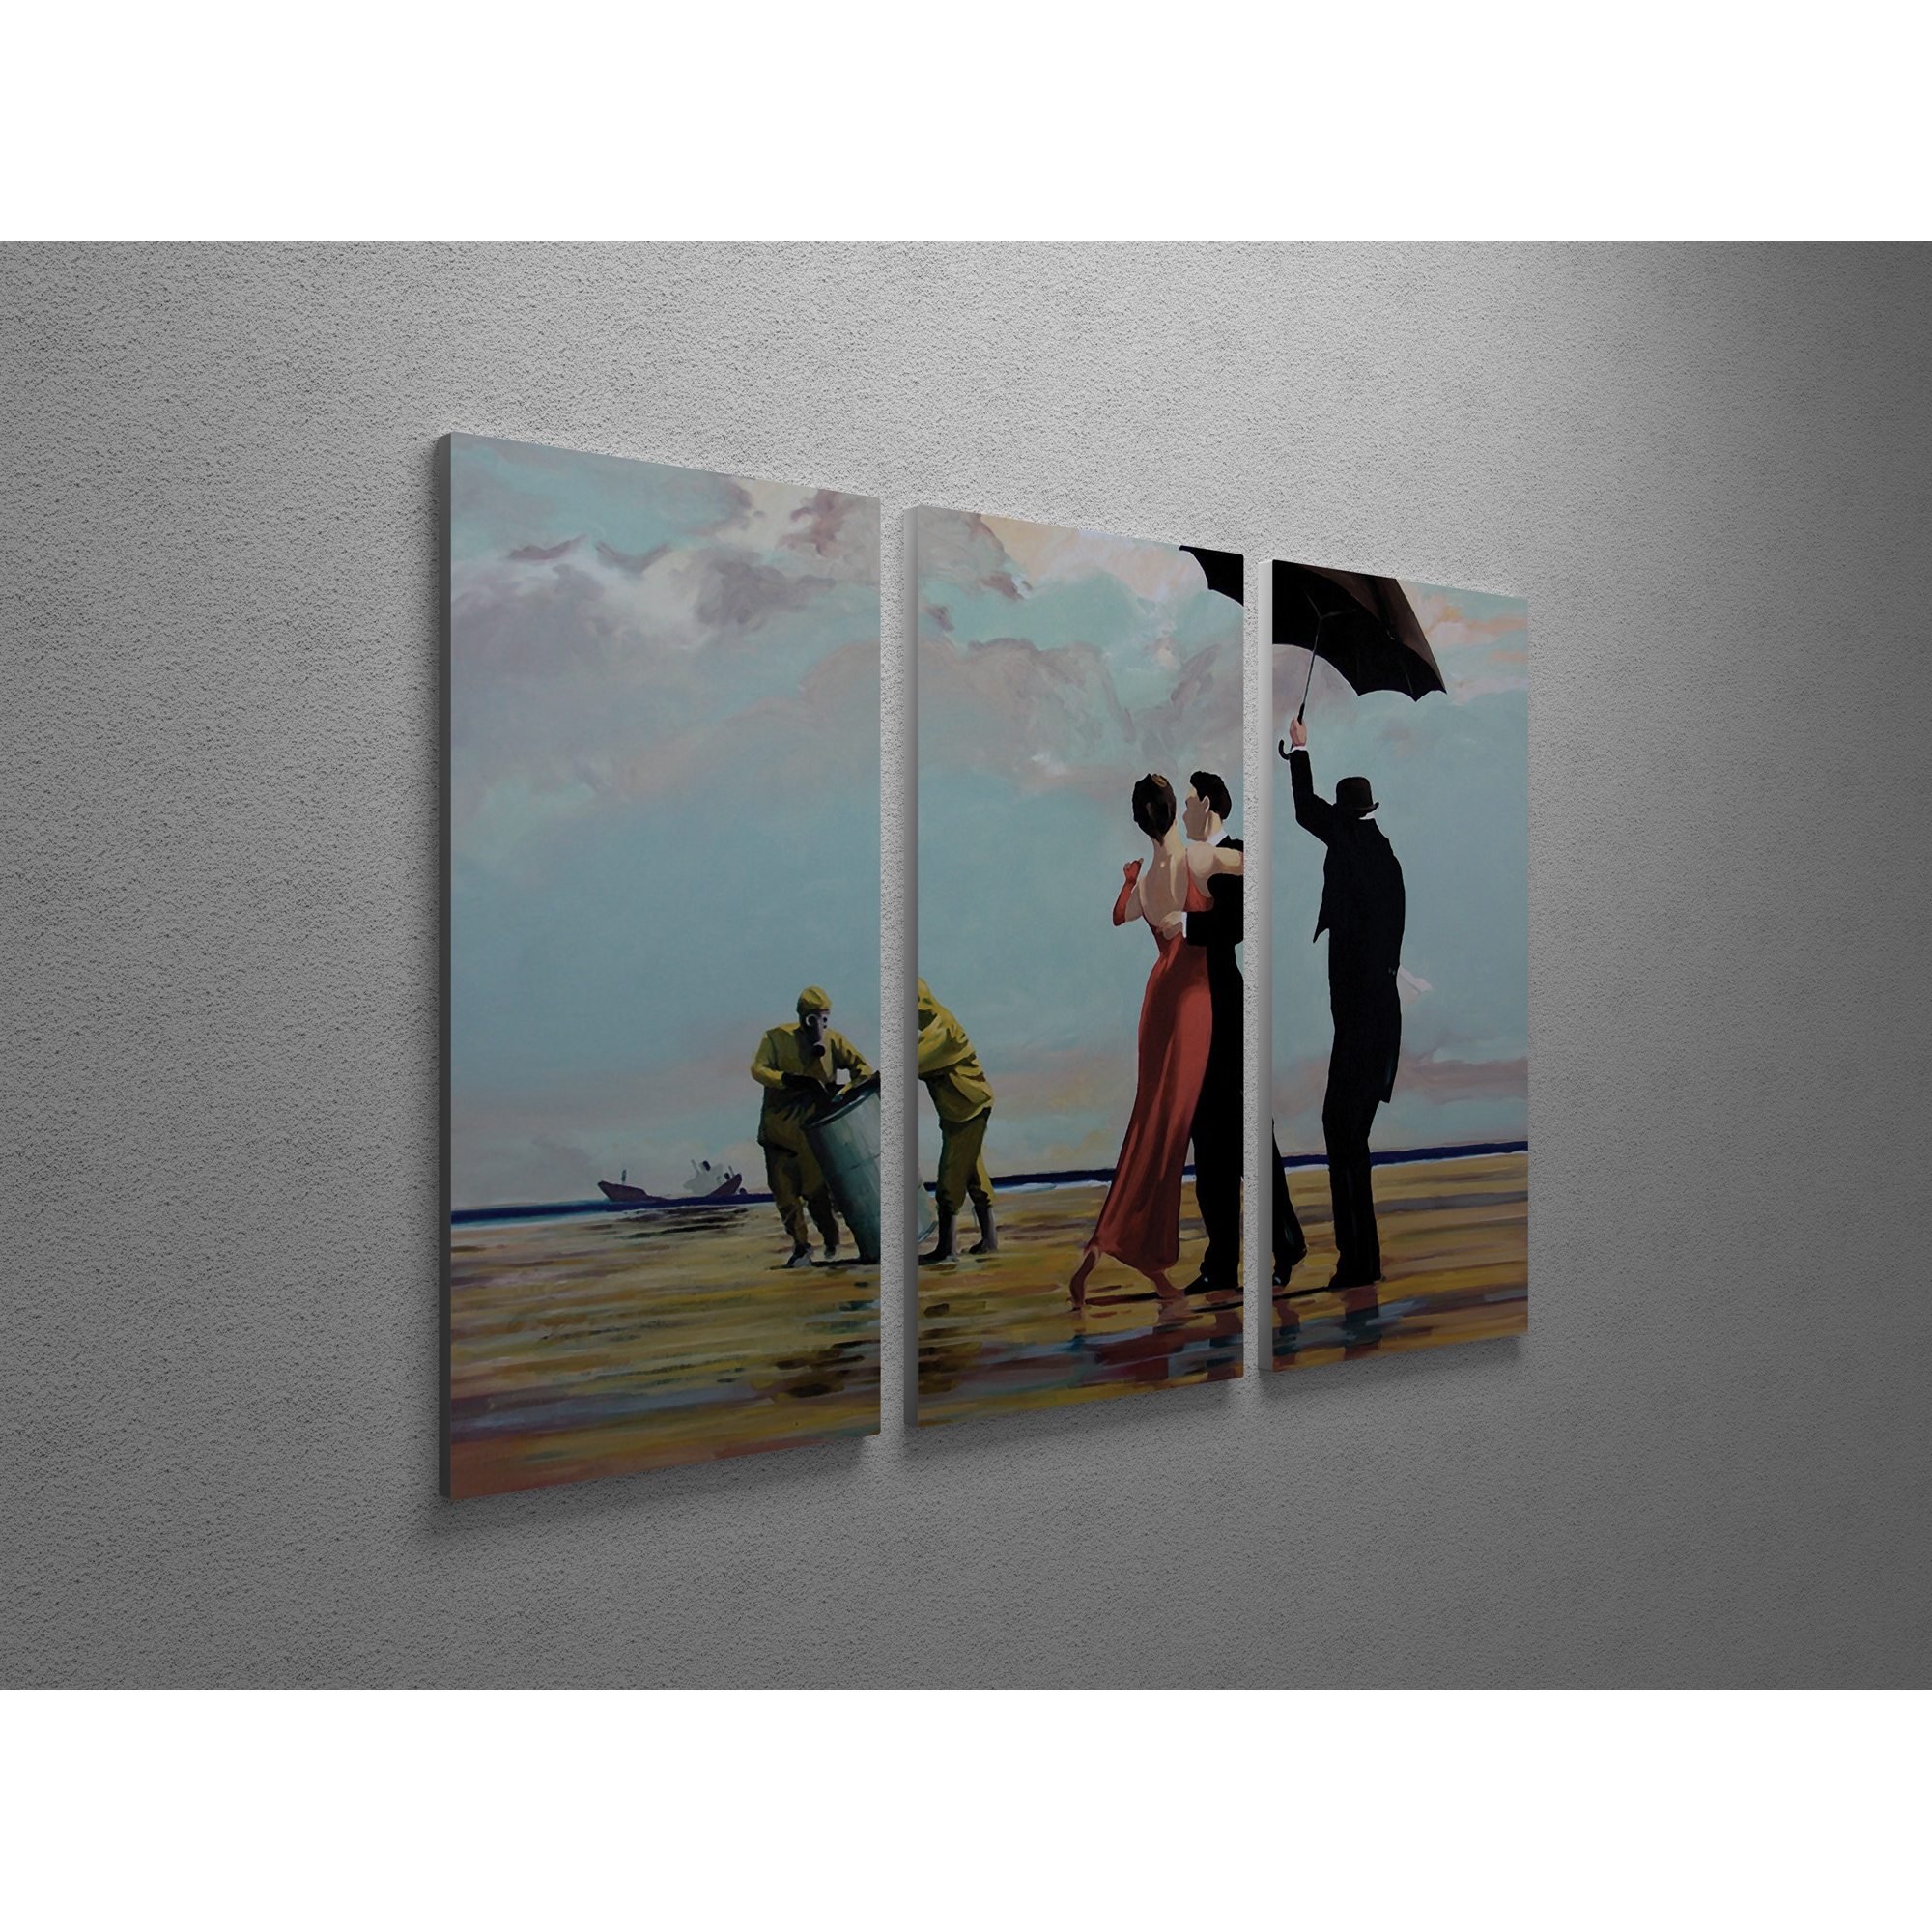 Shop For Banksy Tango On Toxic Waste Triptych Gallery Wrapped Canvas Wall Art Get Free Delivery On Everything At Overstock Your Online Art Gallery Store Get 5 In Rewards With Club O 10898841